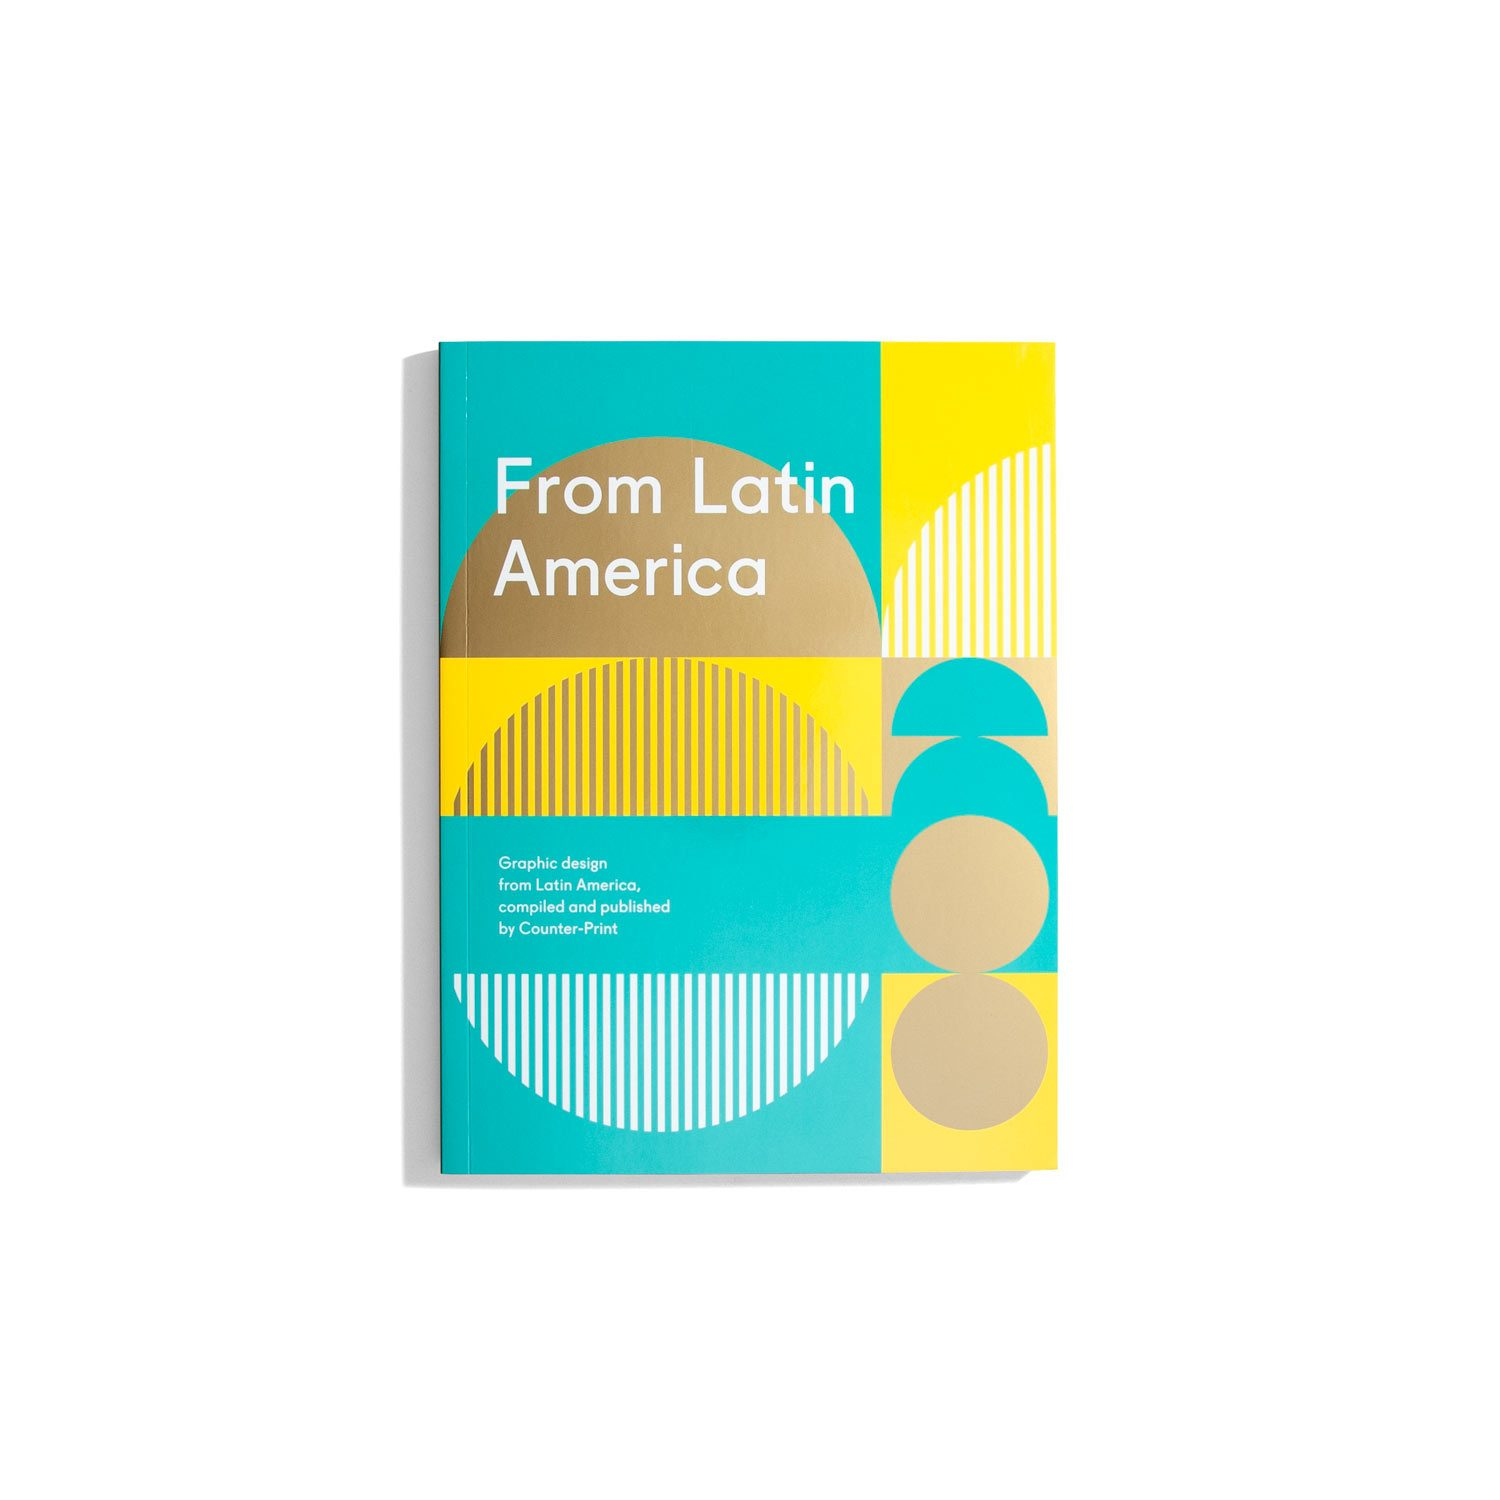 From Latin America - Graphic Design from Latin America